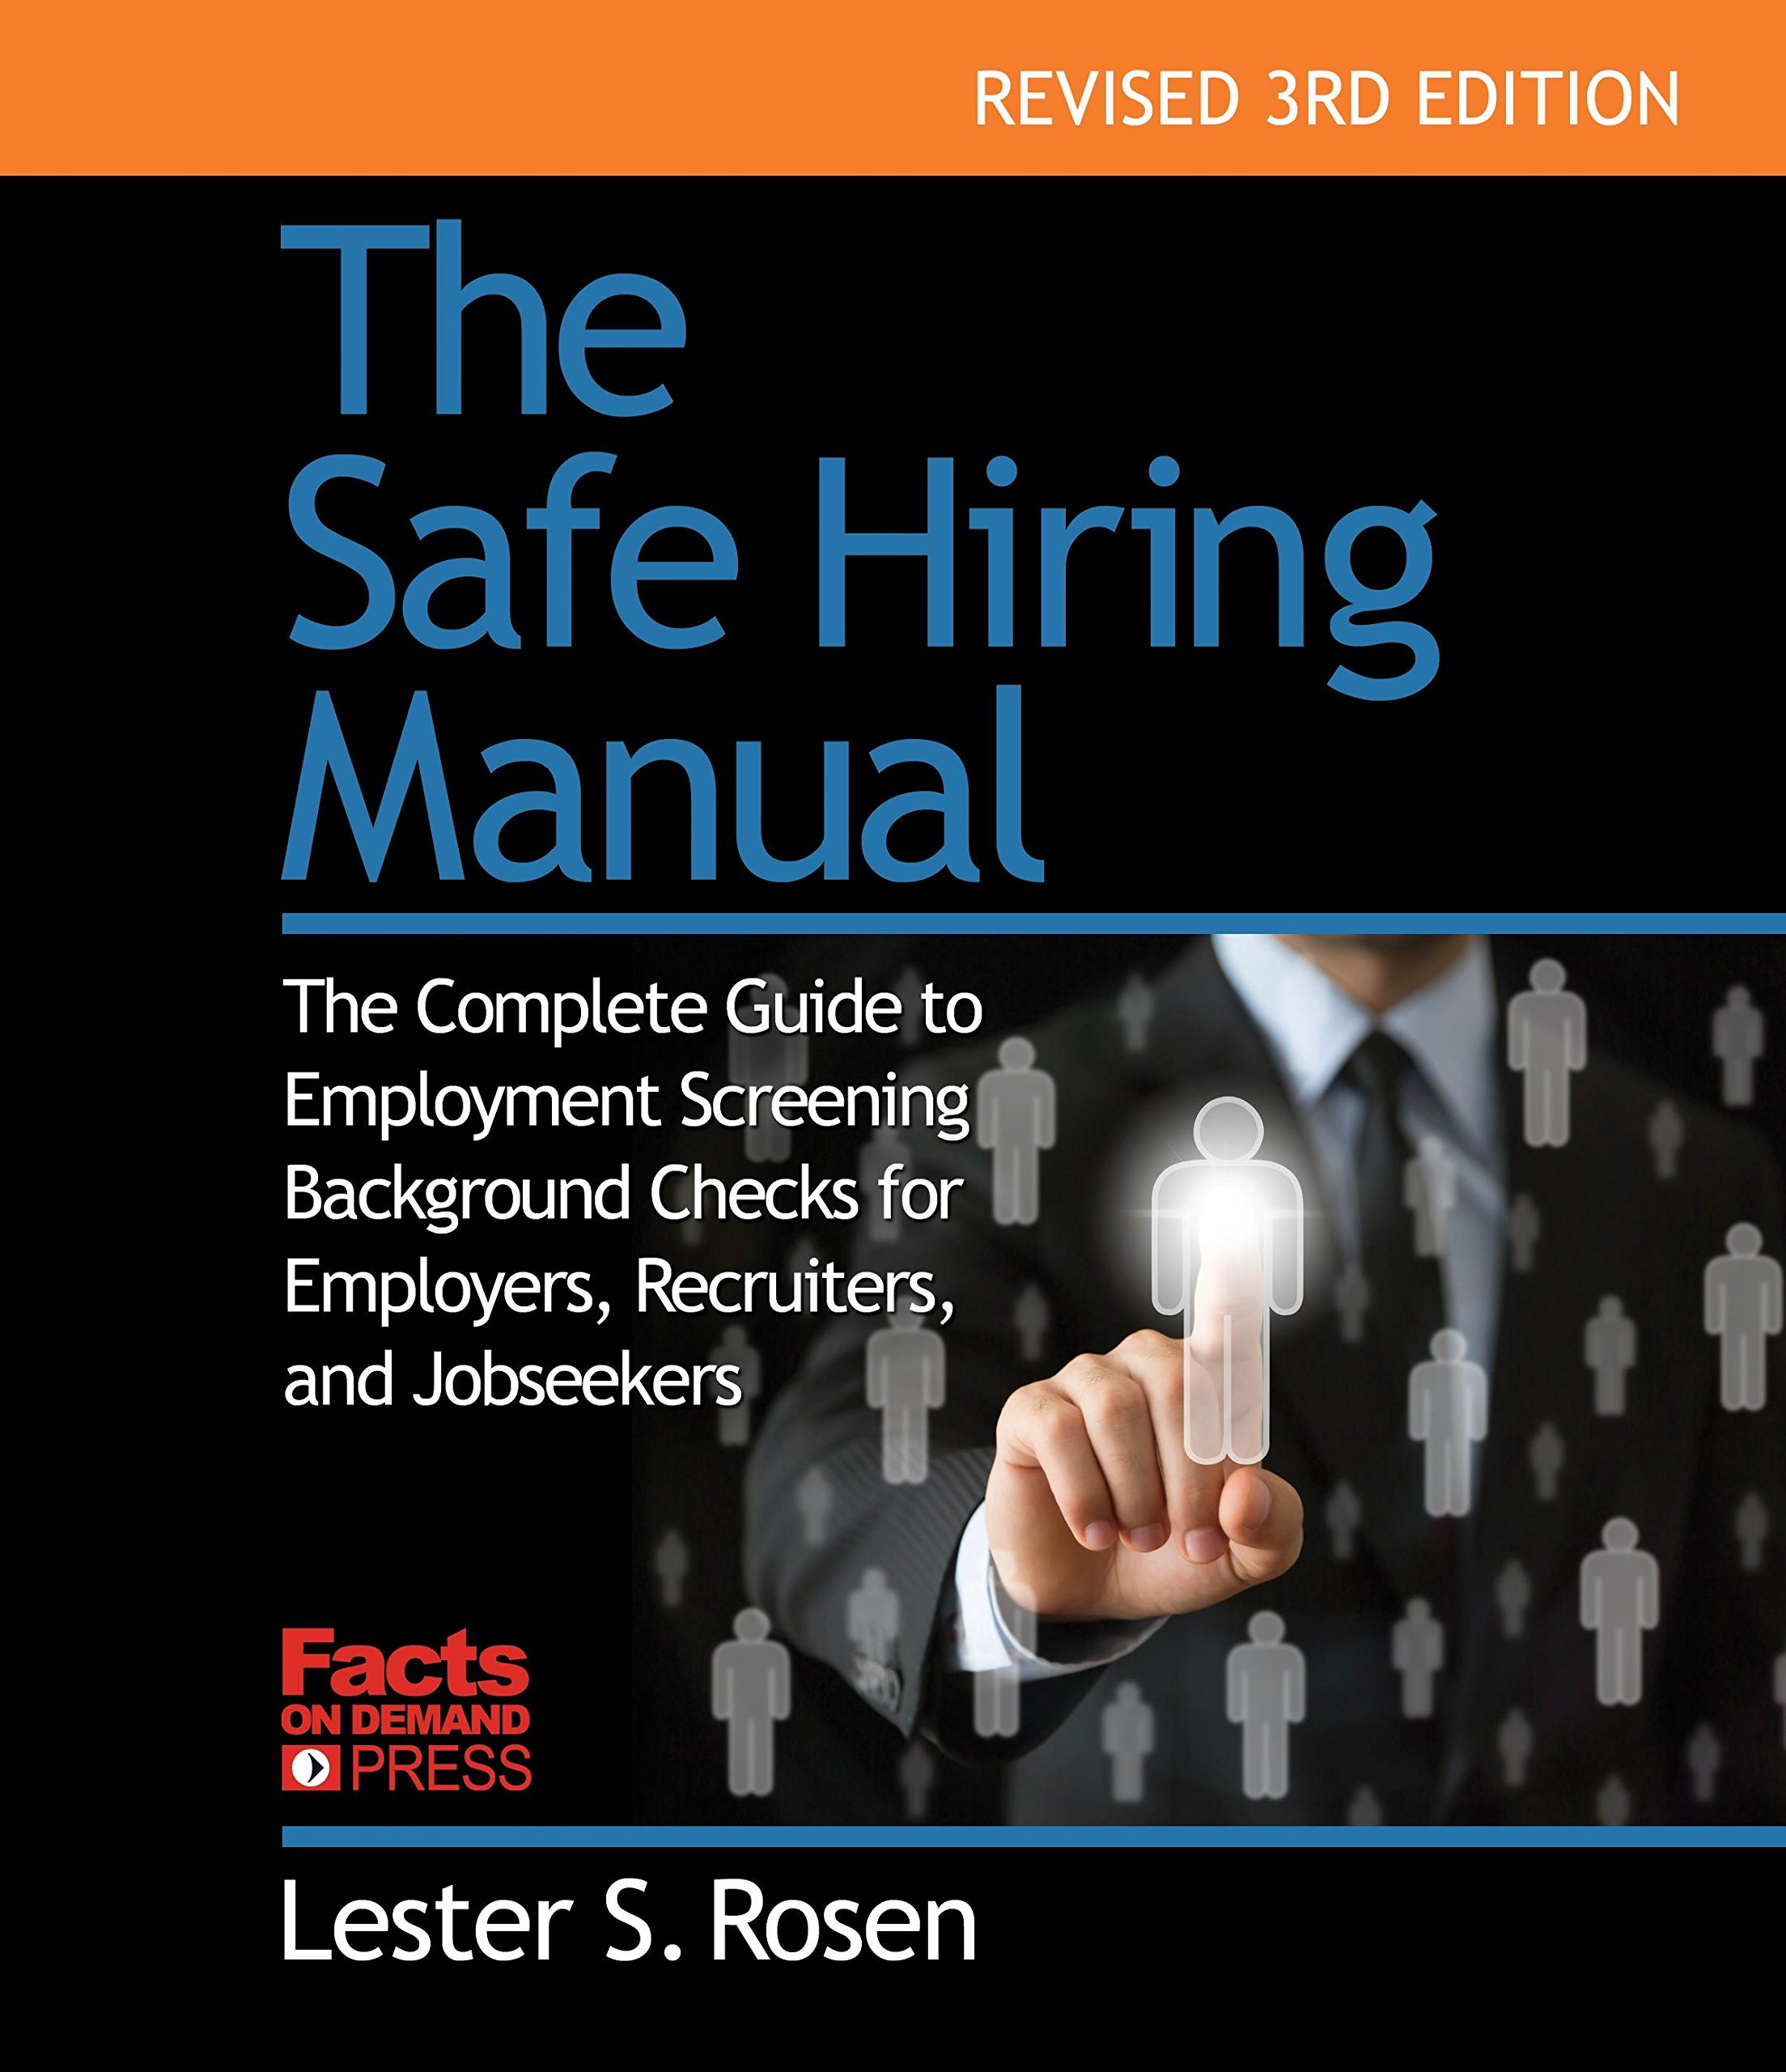 safe hiring manual.jpg